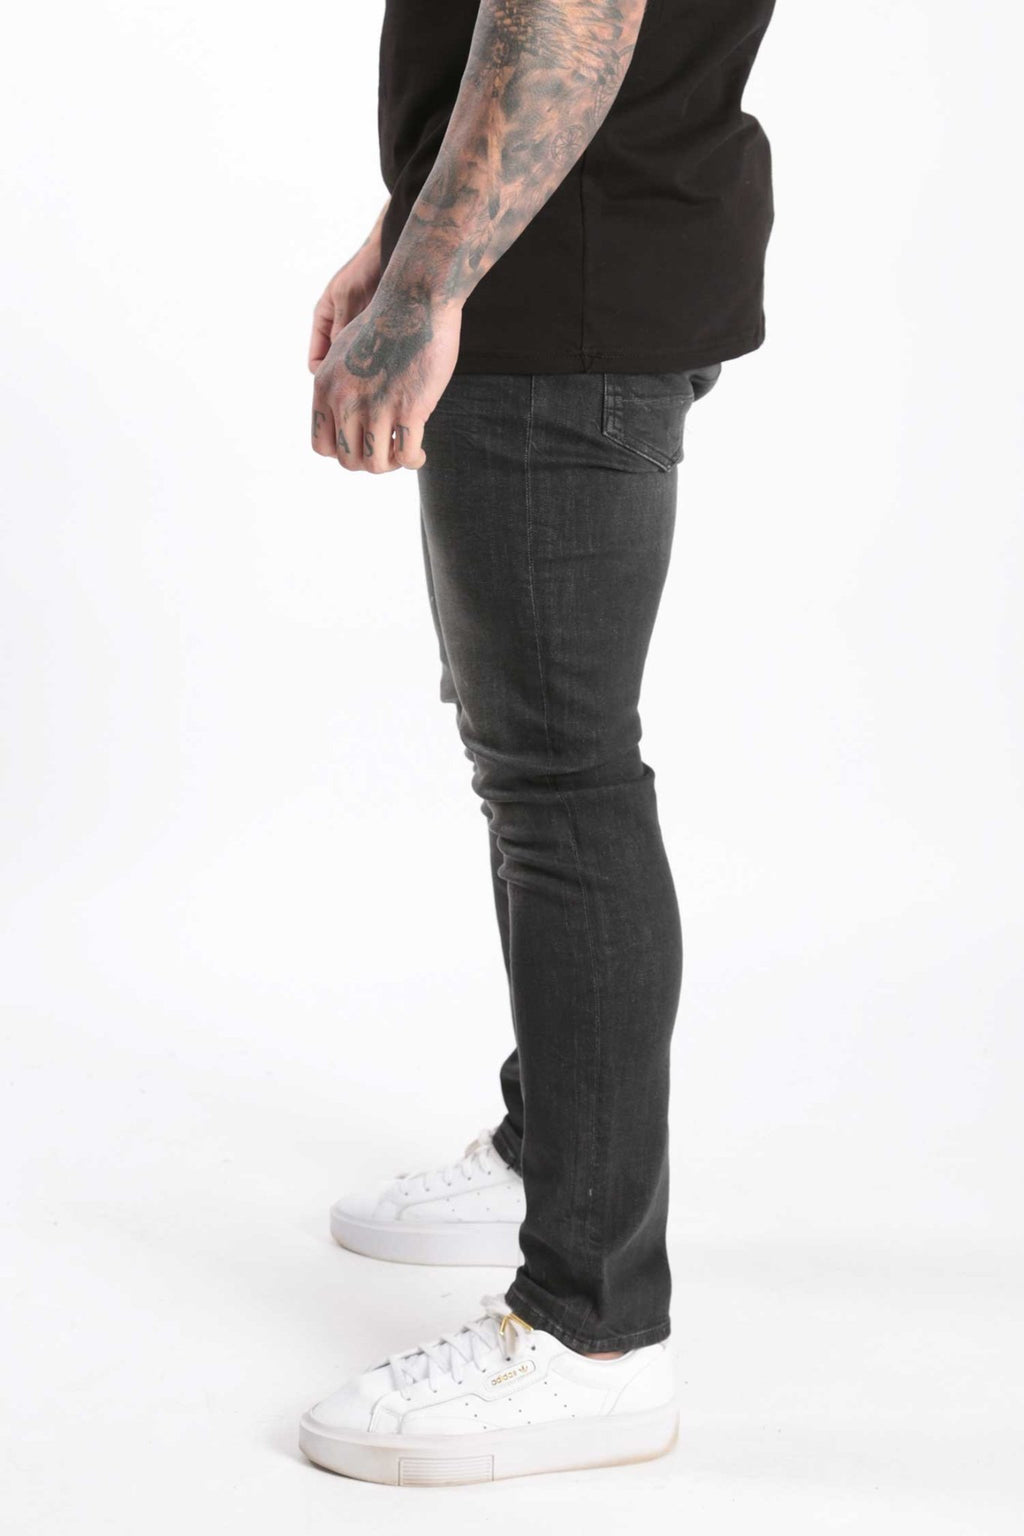 Rose London Slim Black Wash Denim Jeans - Rose London